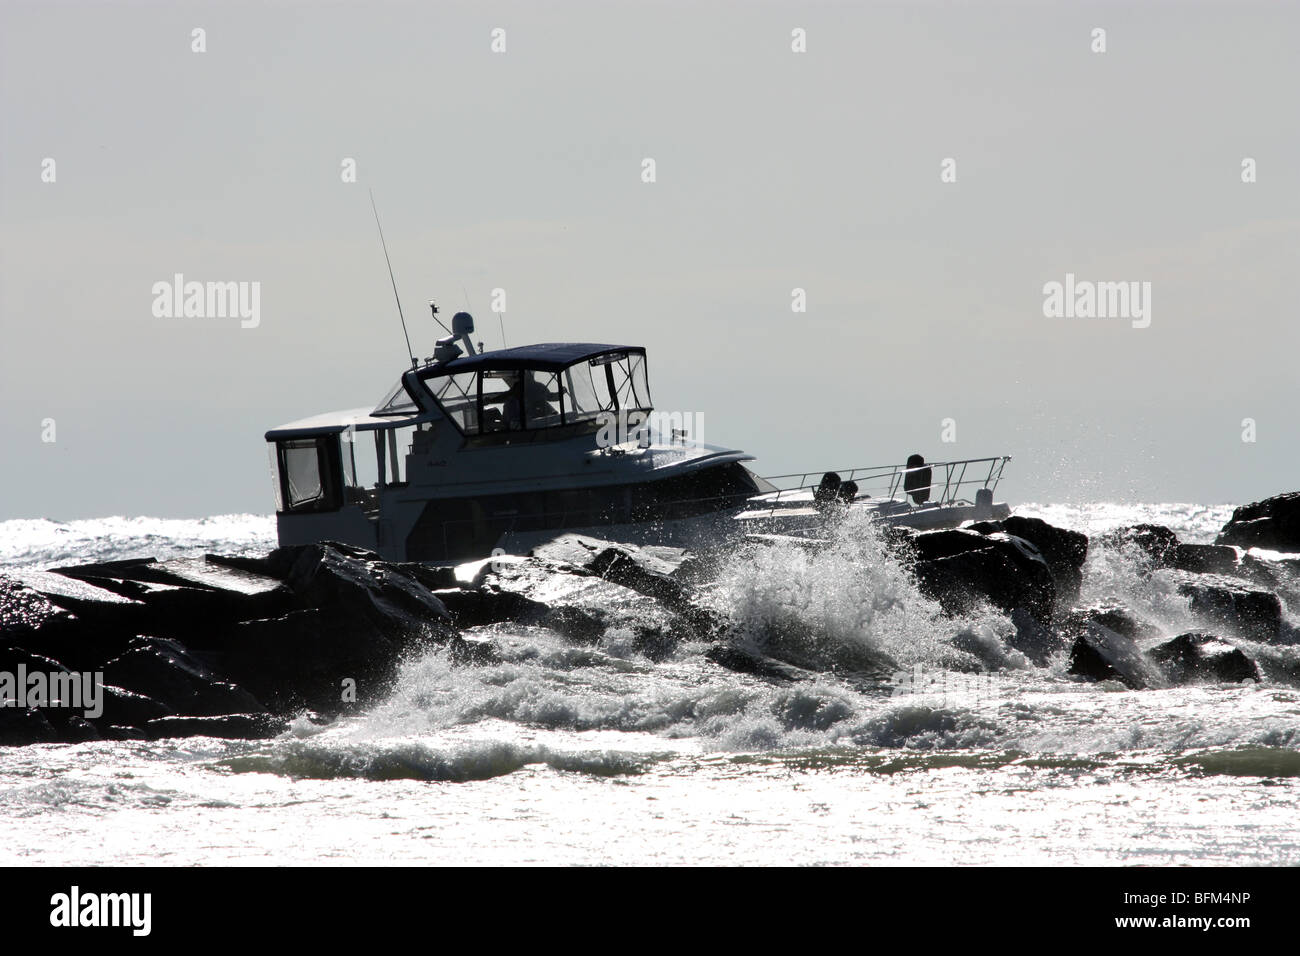 Boat running aground on rocks - Stock Image